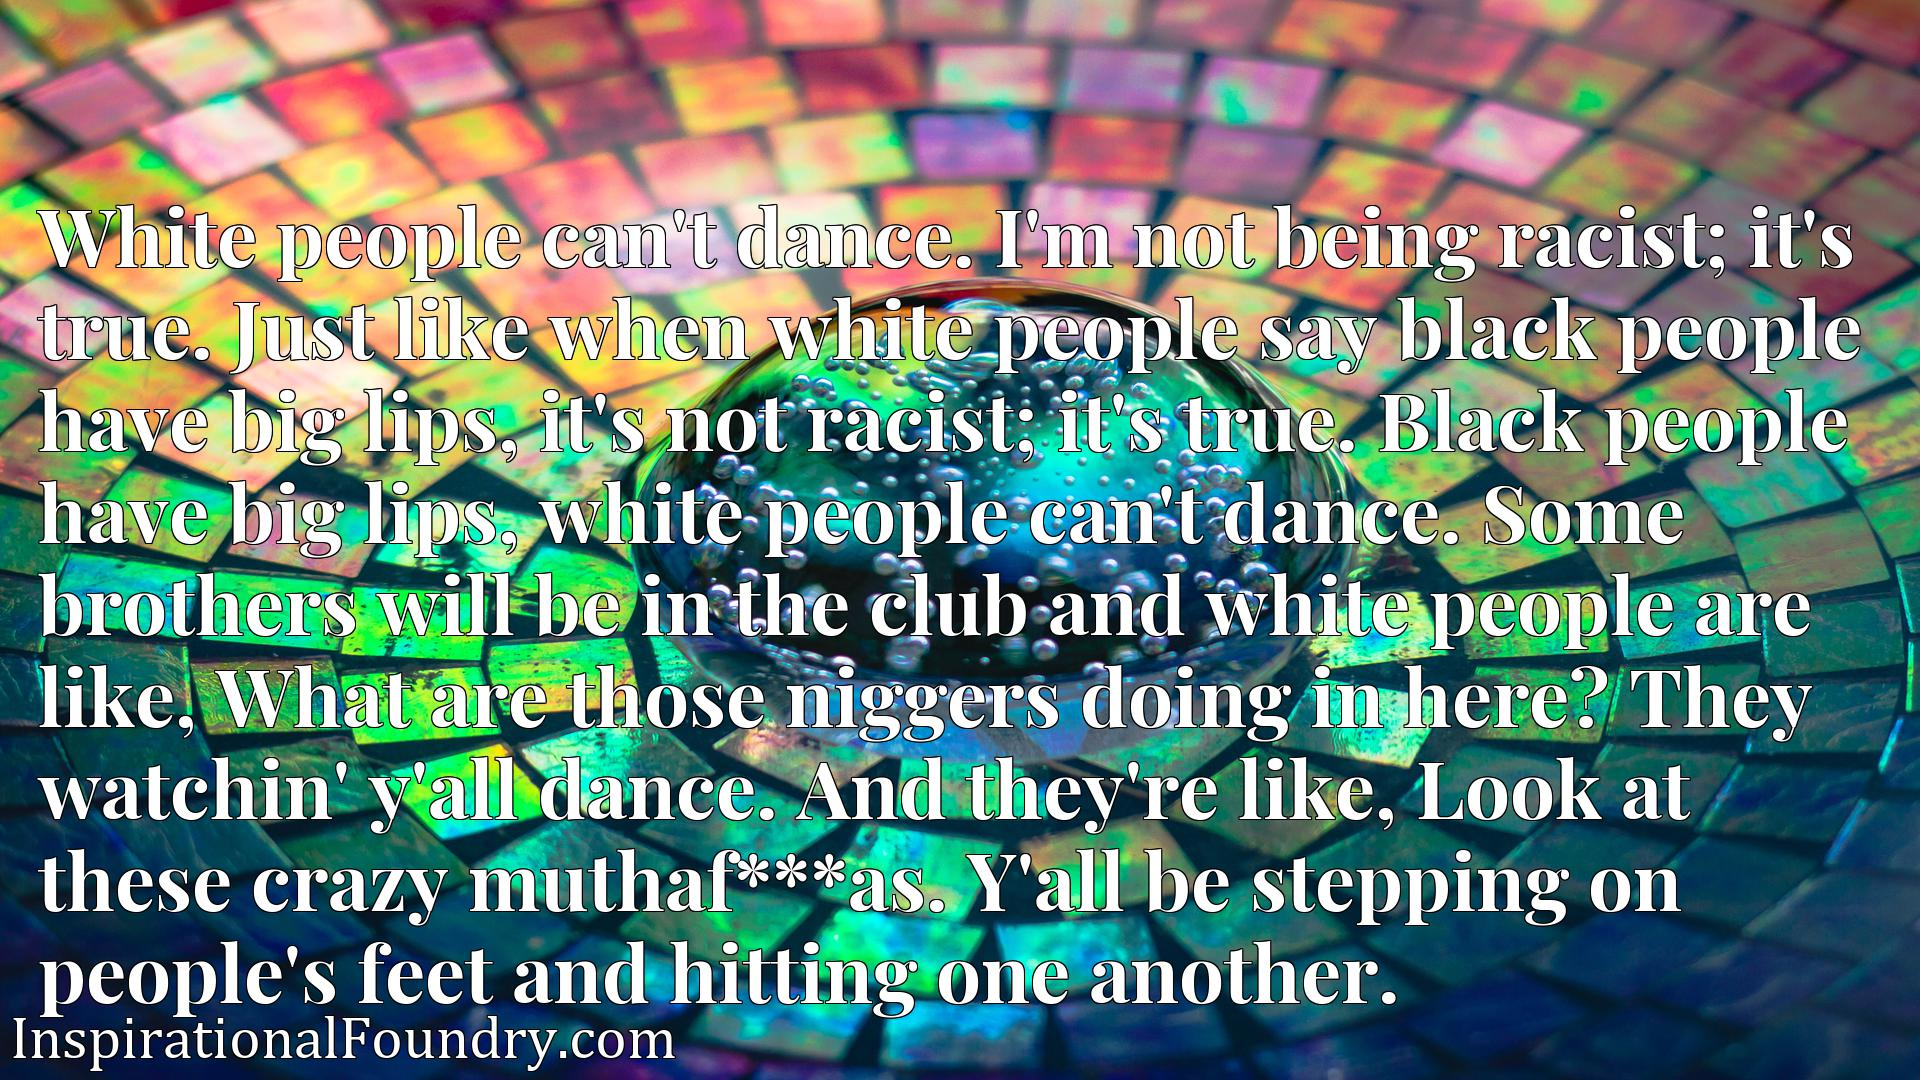 White people can't dance. I'm not being racist; it's true. Just like when white people say black people have big lips, it's not racist; it's true. Black people have big lips, white people can't dance. Some brothers will be in the club and white people are like, What are those niggers doing in here?x9d They watchin' y'all dance. And they're like, Look at these crazy muthaf***as.x9d Y'all be stepping on people's feet and hitting one another.